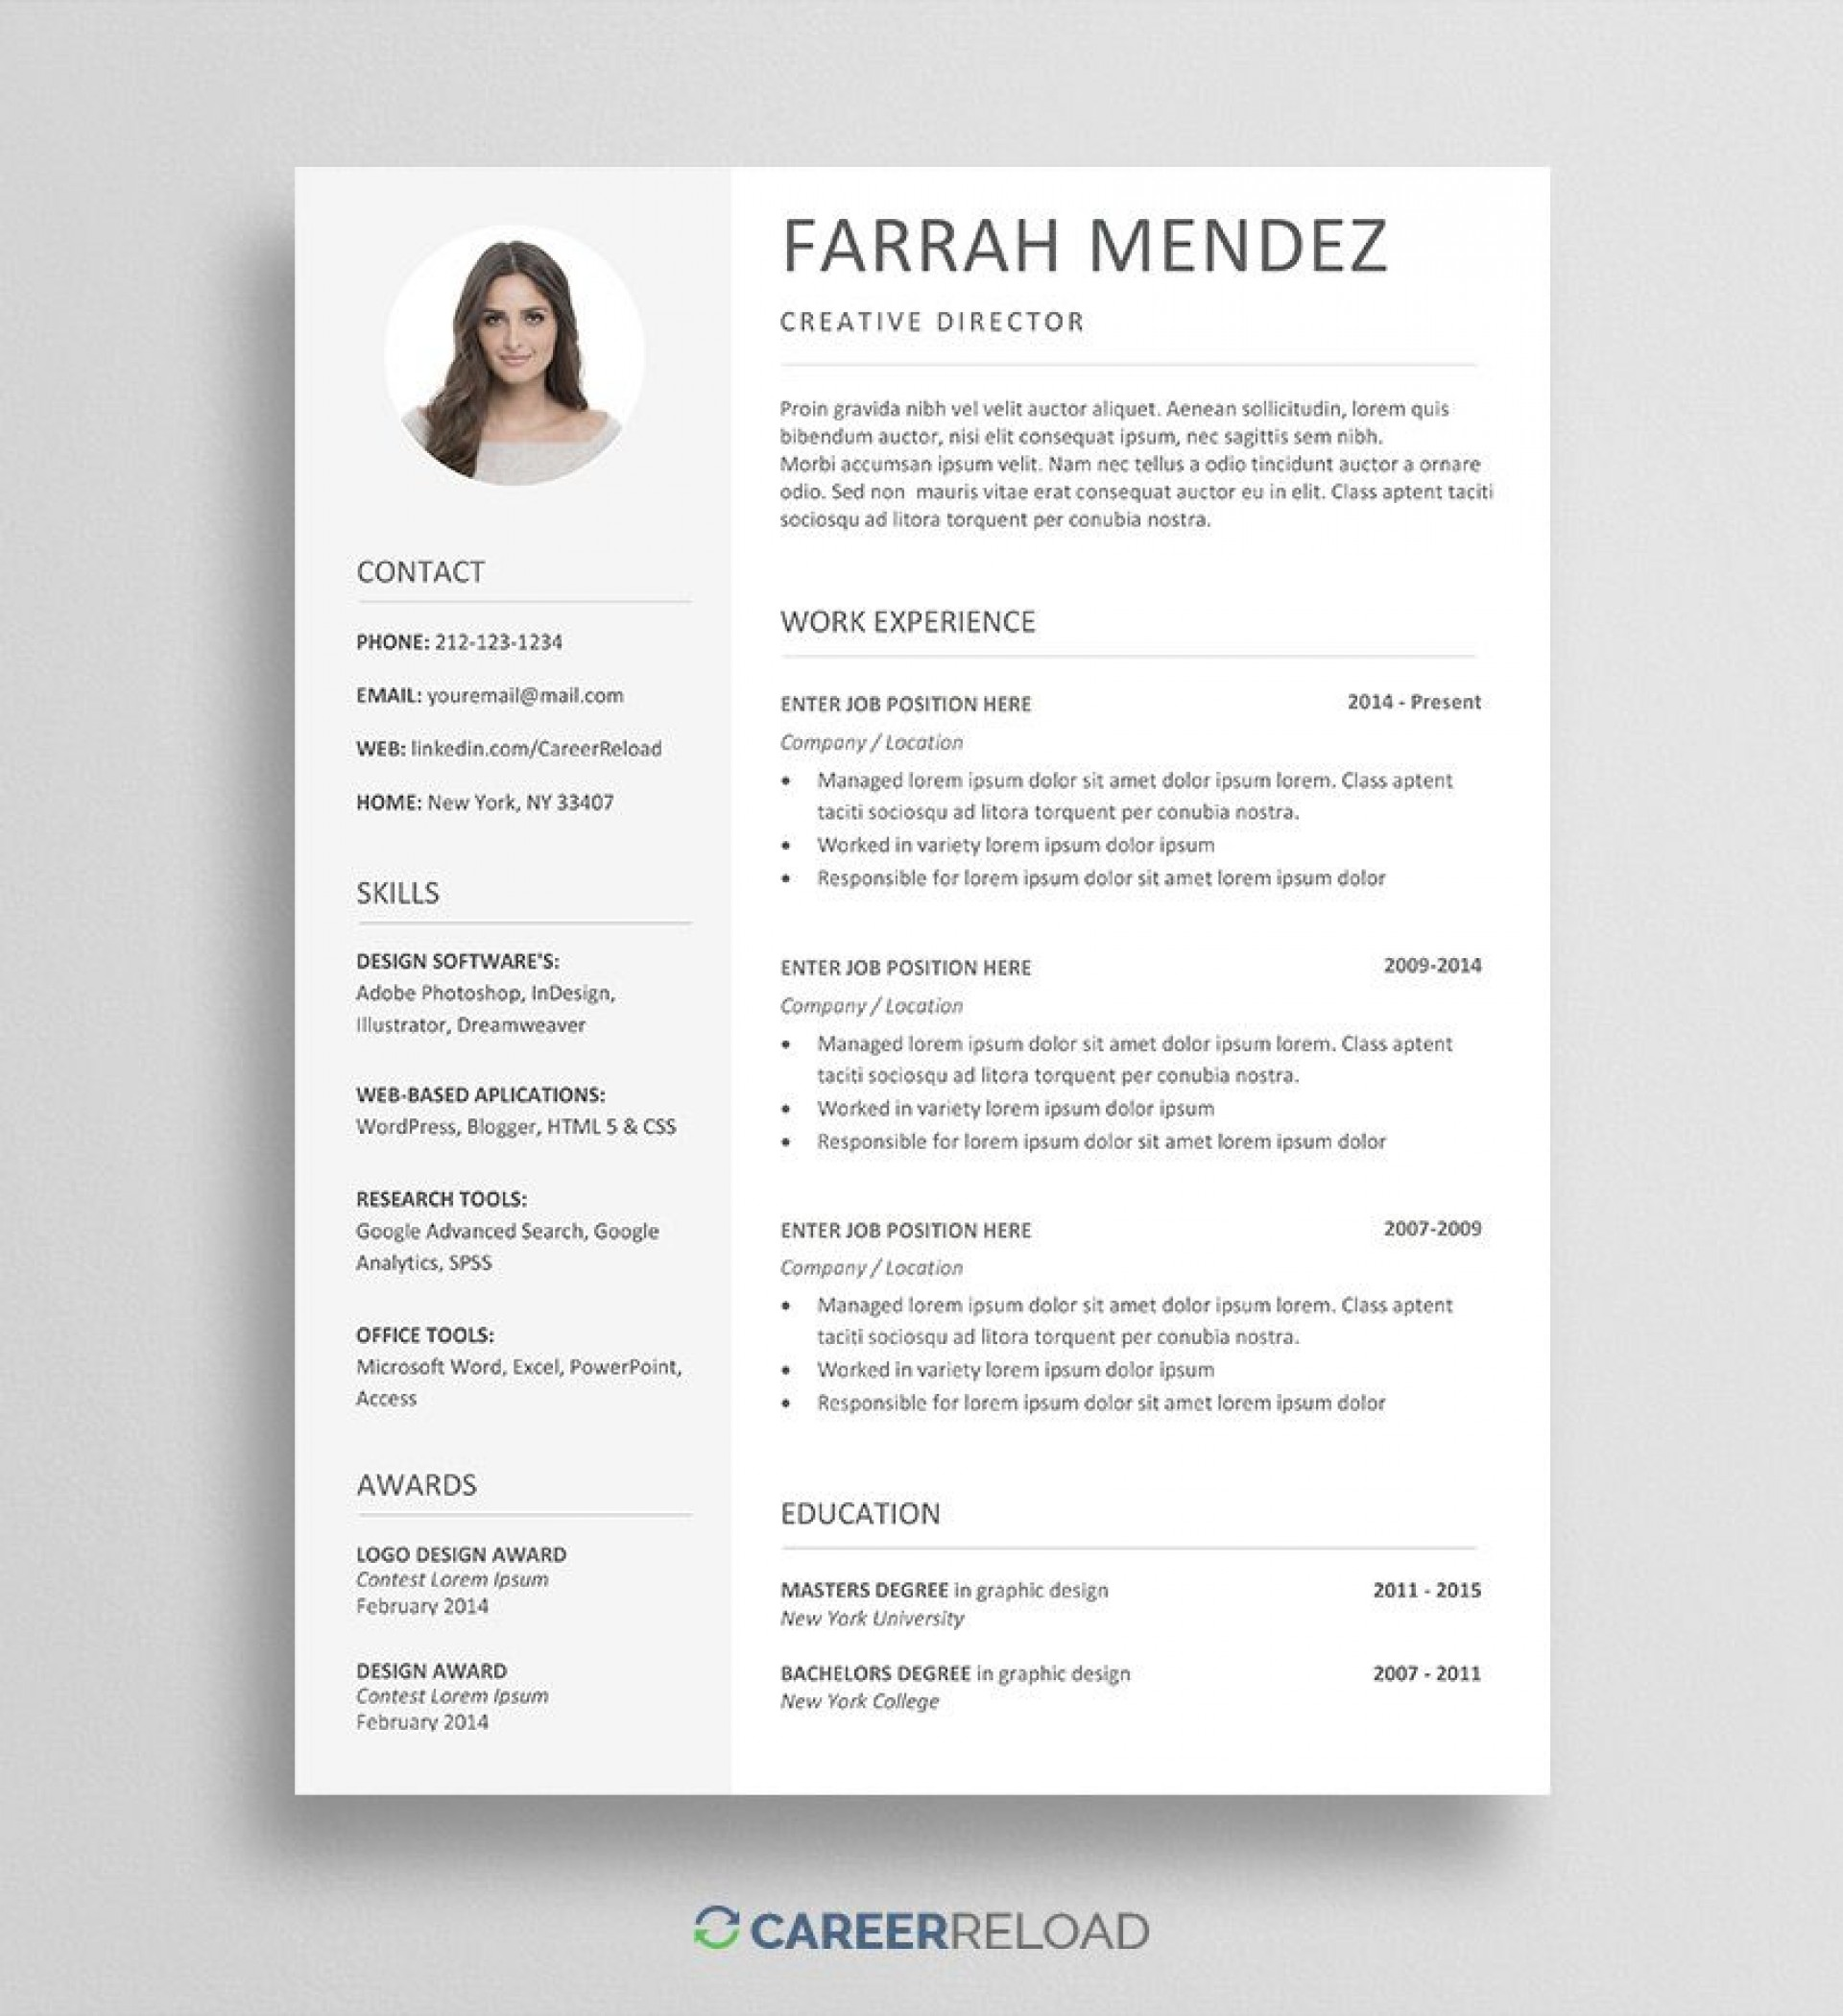 005 Staggering Free Resume Template 2015 Concept 1920